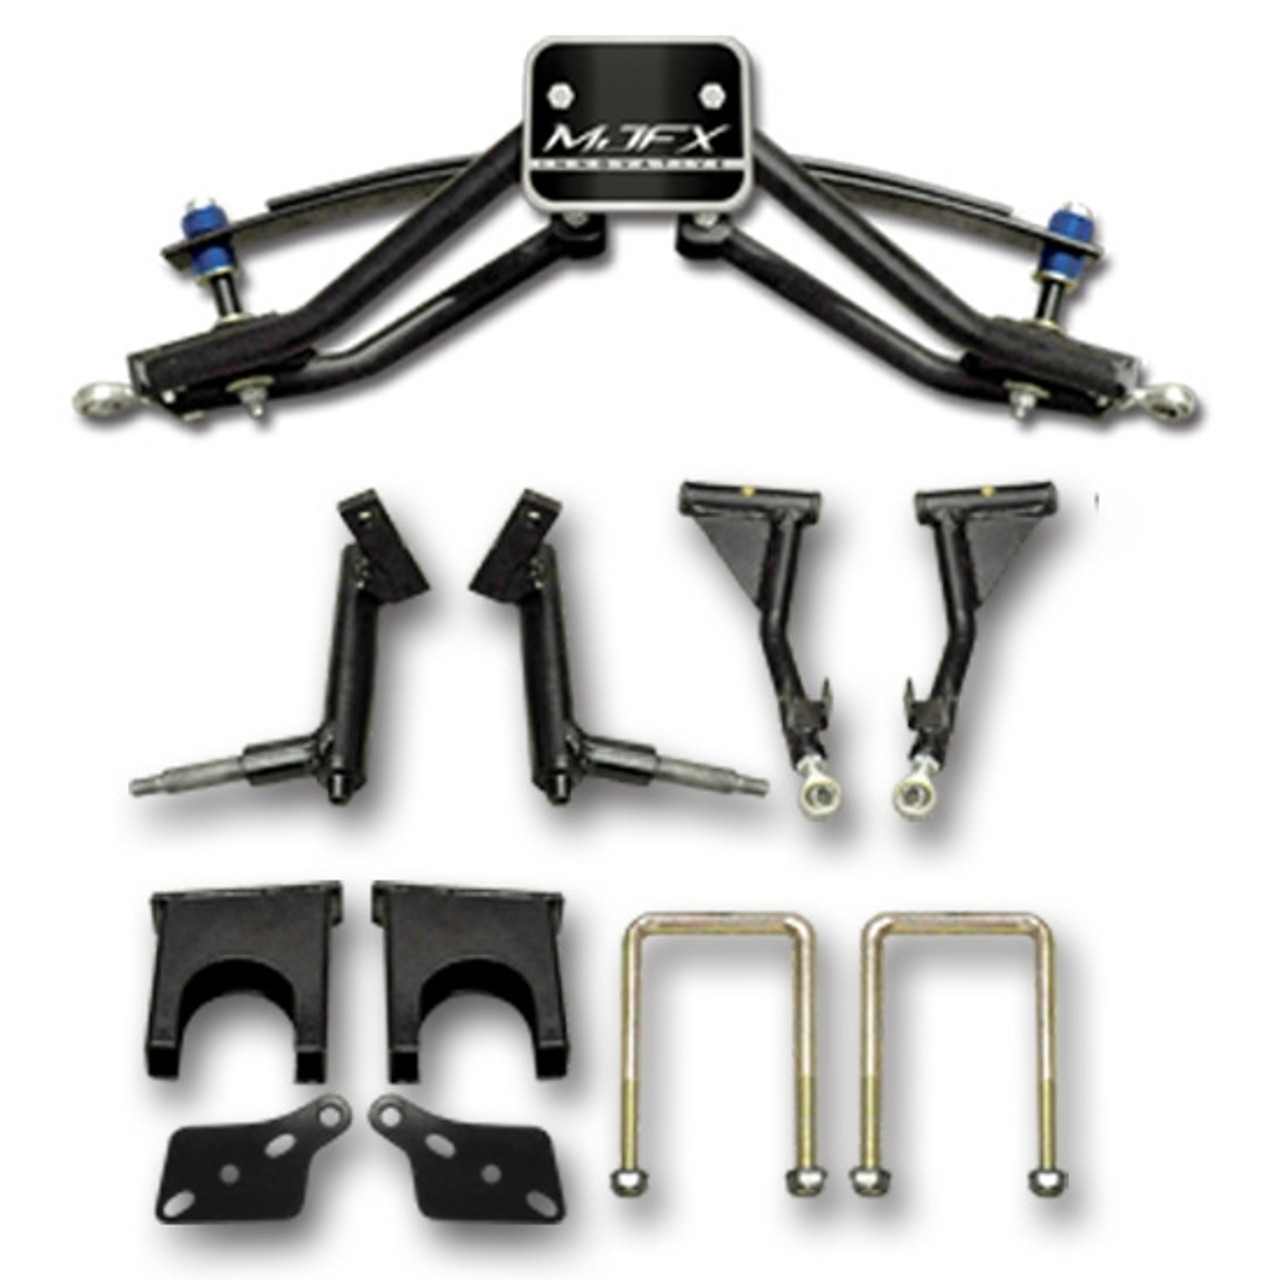 "Madjax 6"" A-Arm Lift Kit - Fits Club Car Precedent (2004-Up)"